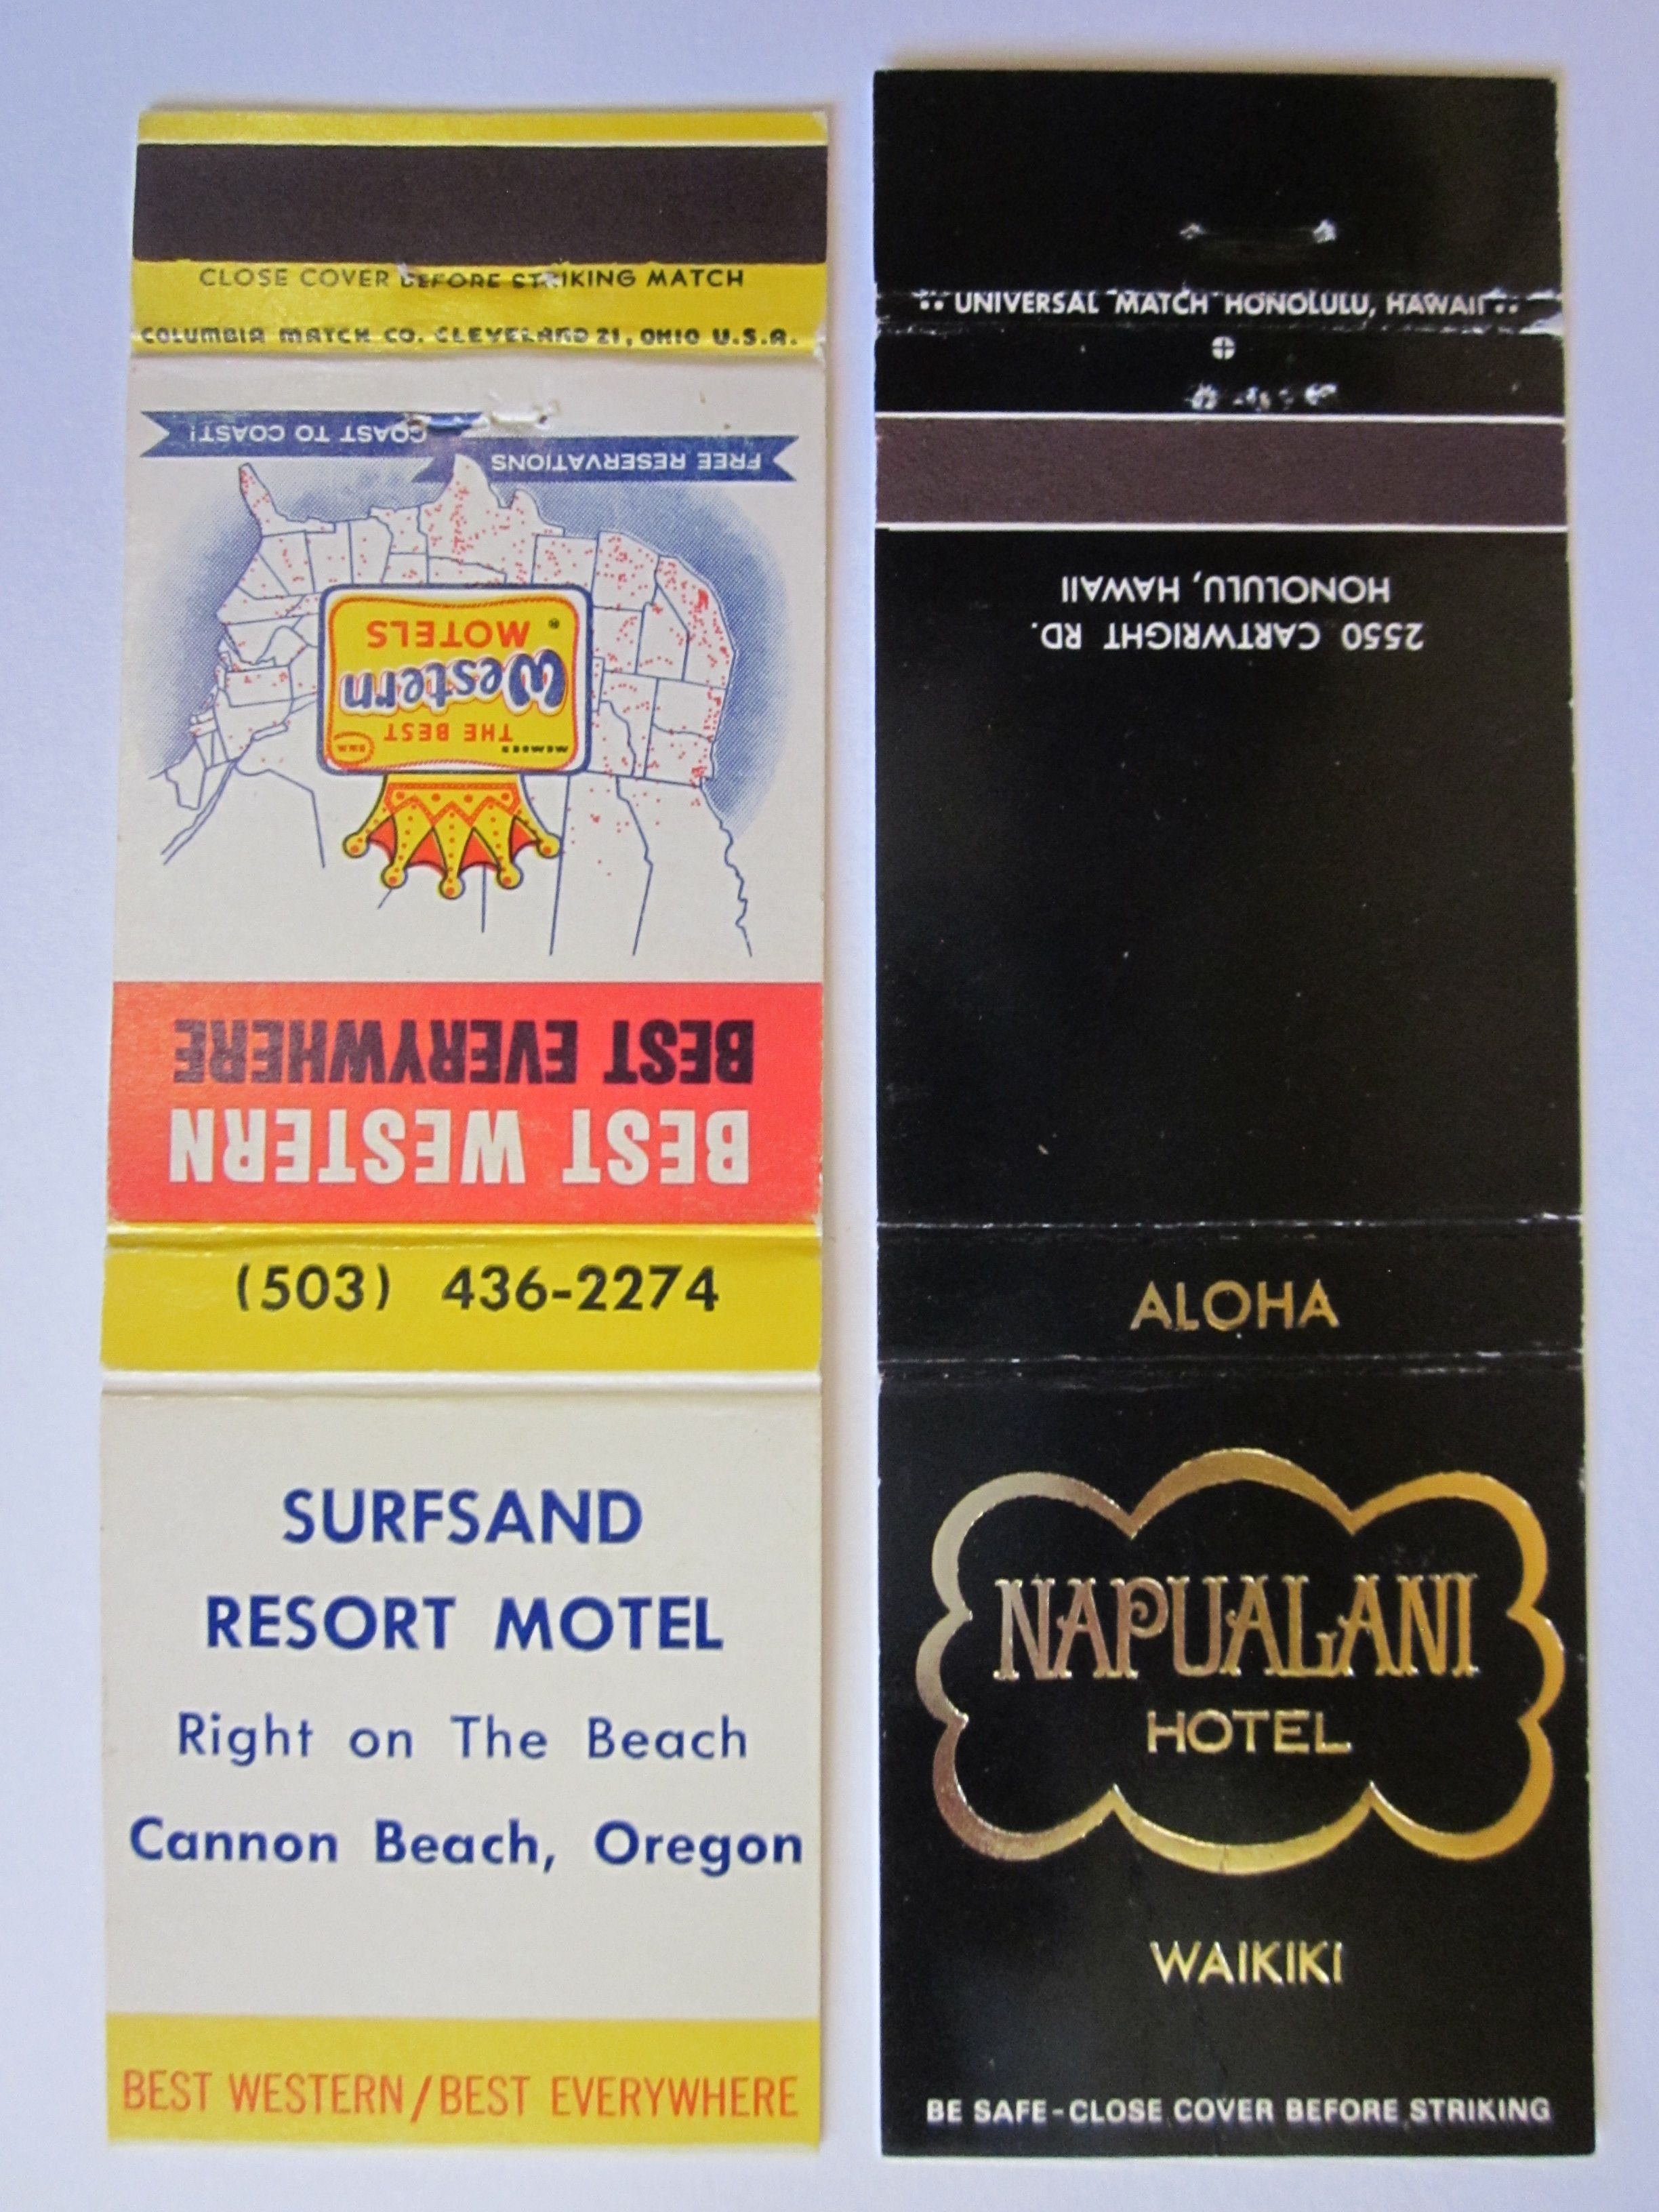 1 Surfsand Resort Motel Cannon Beach Or 2 Napualani Hotel